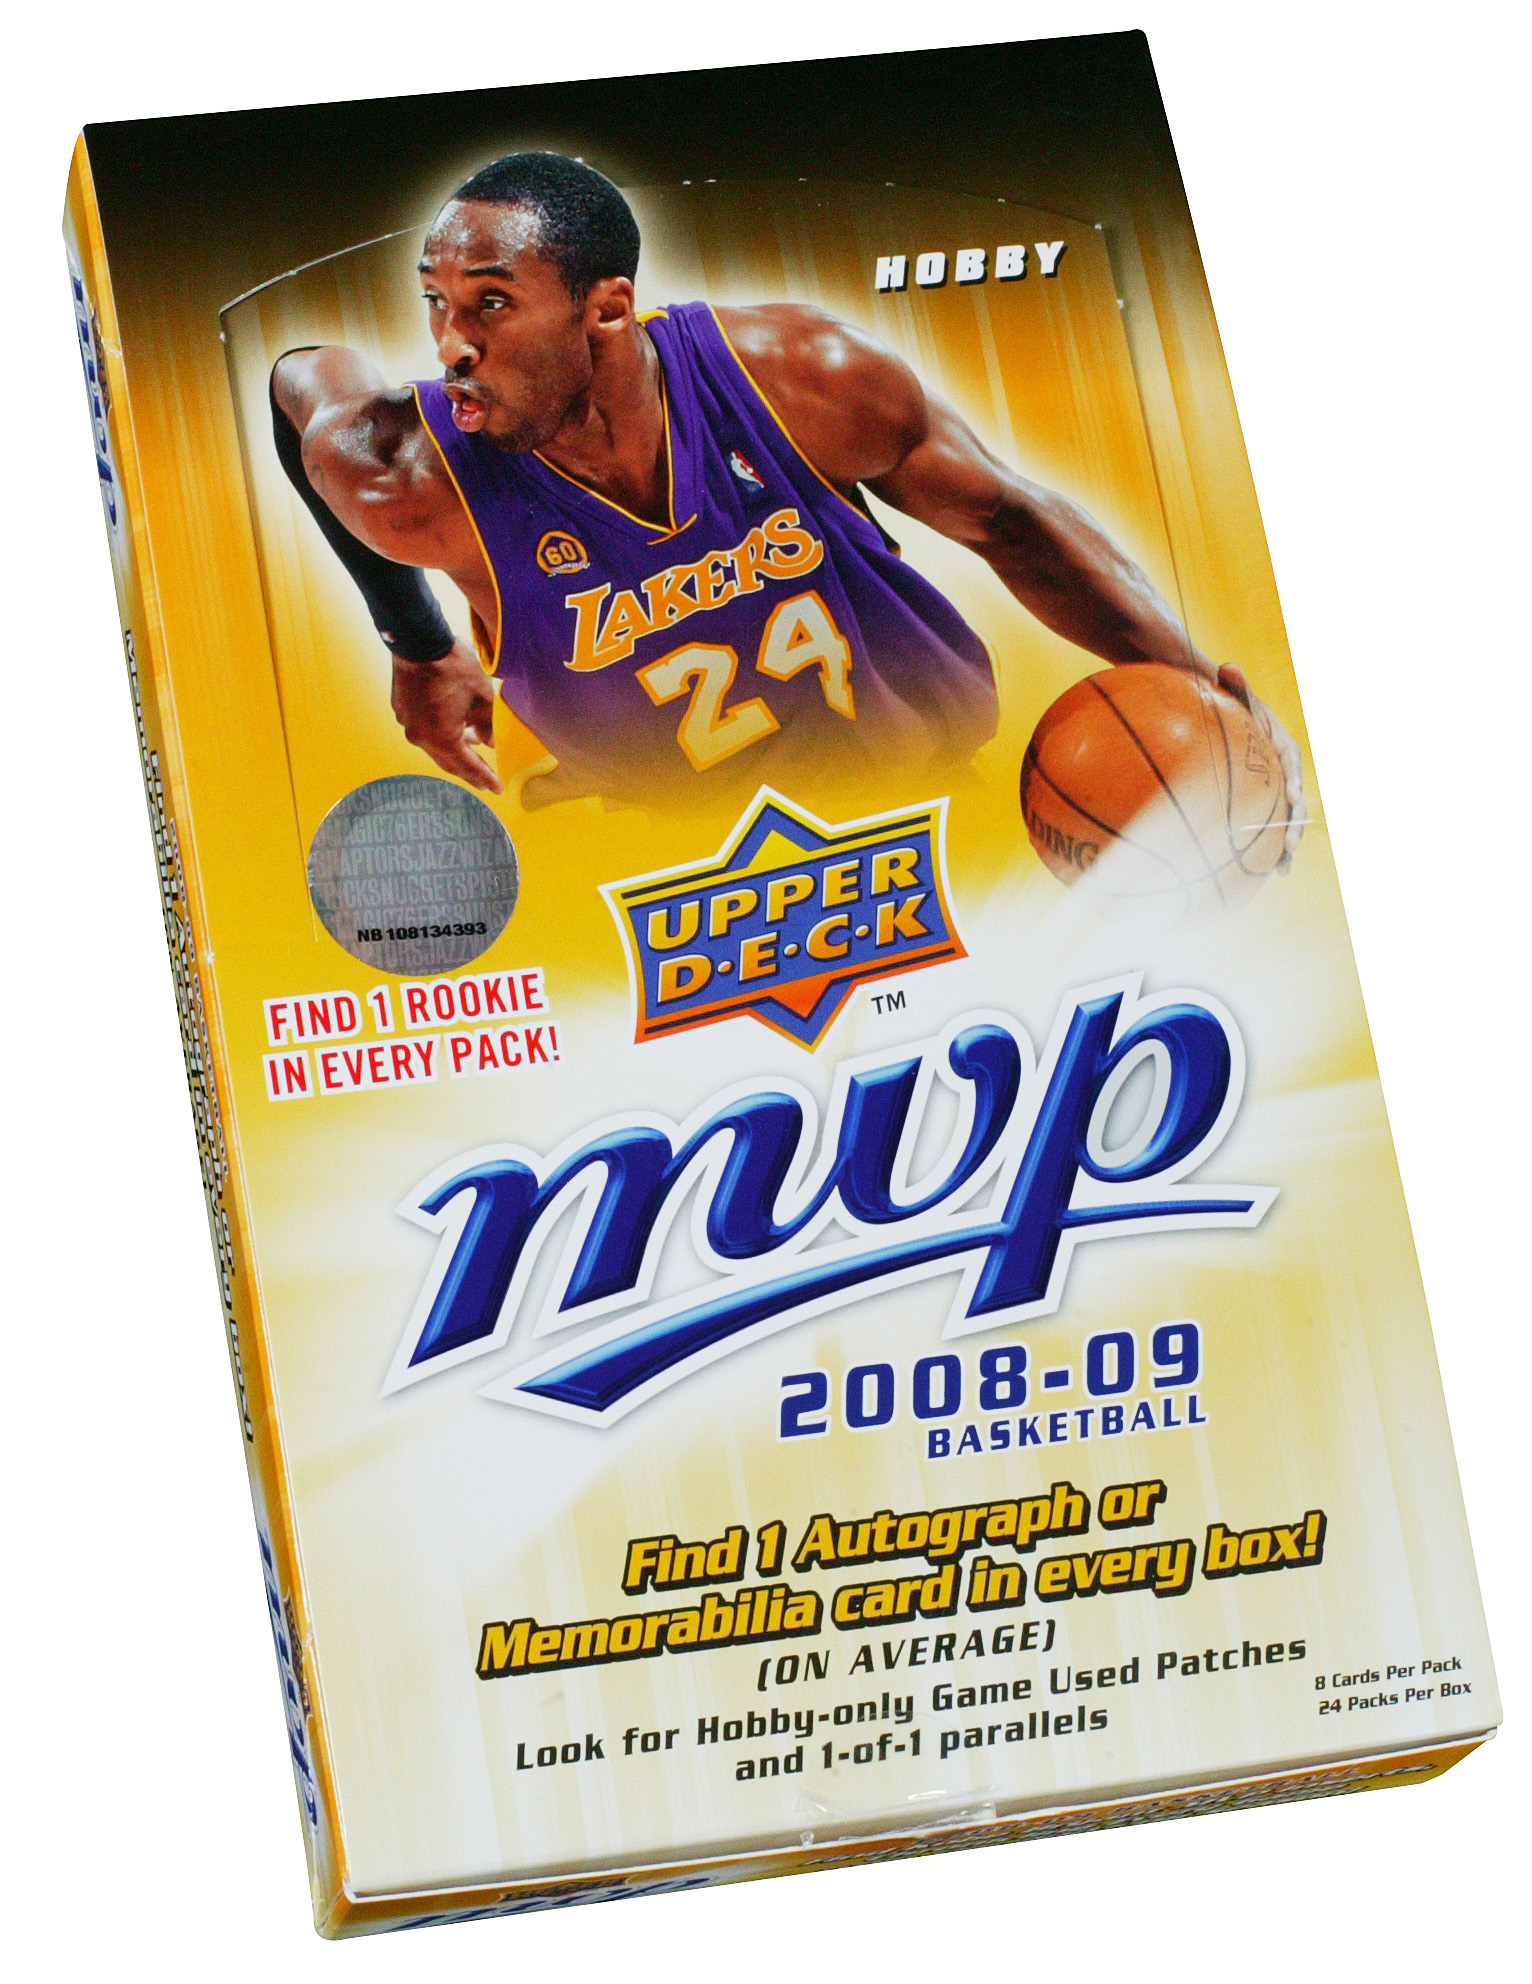 2008-09 Upper Deck MVP Basketball Hobby Box card image